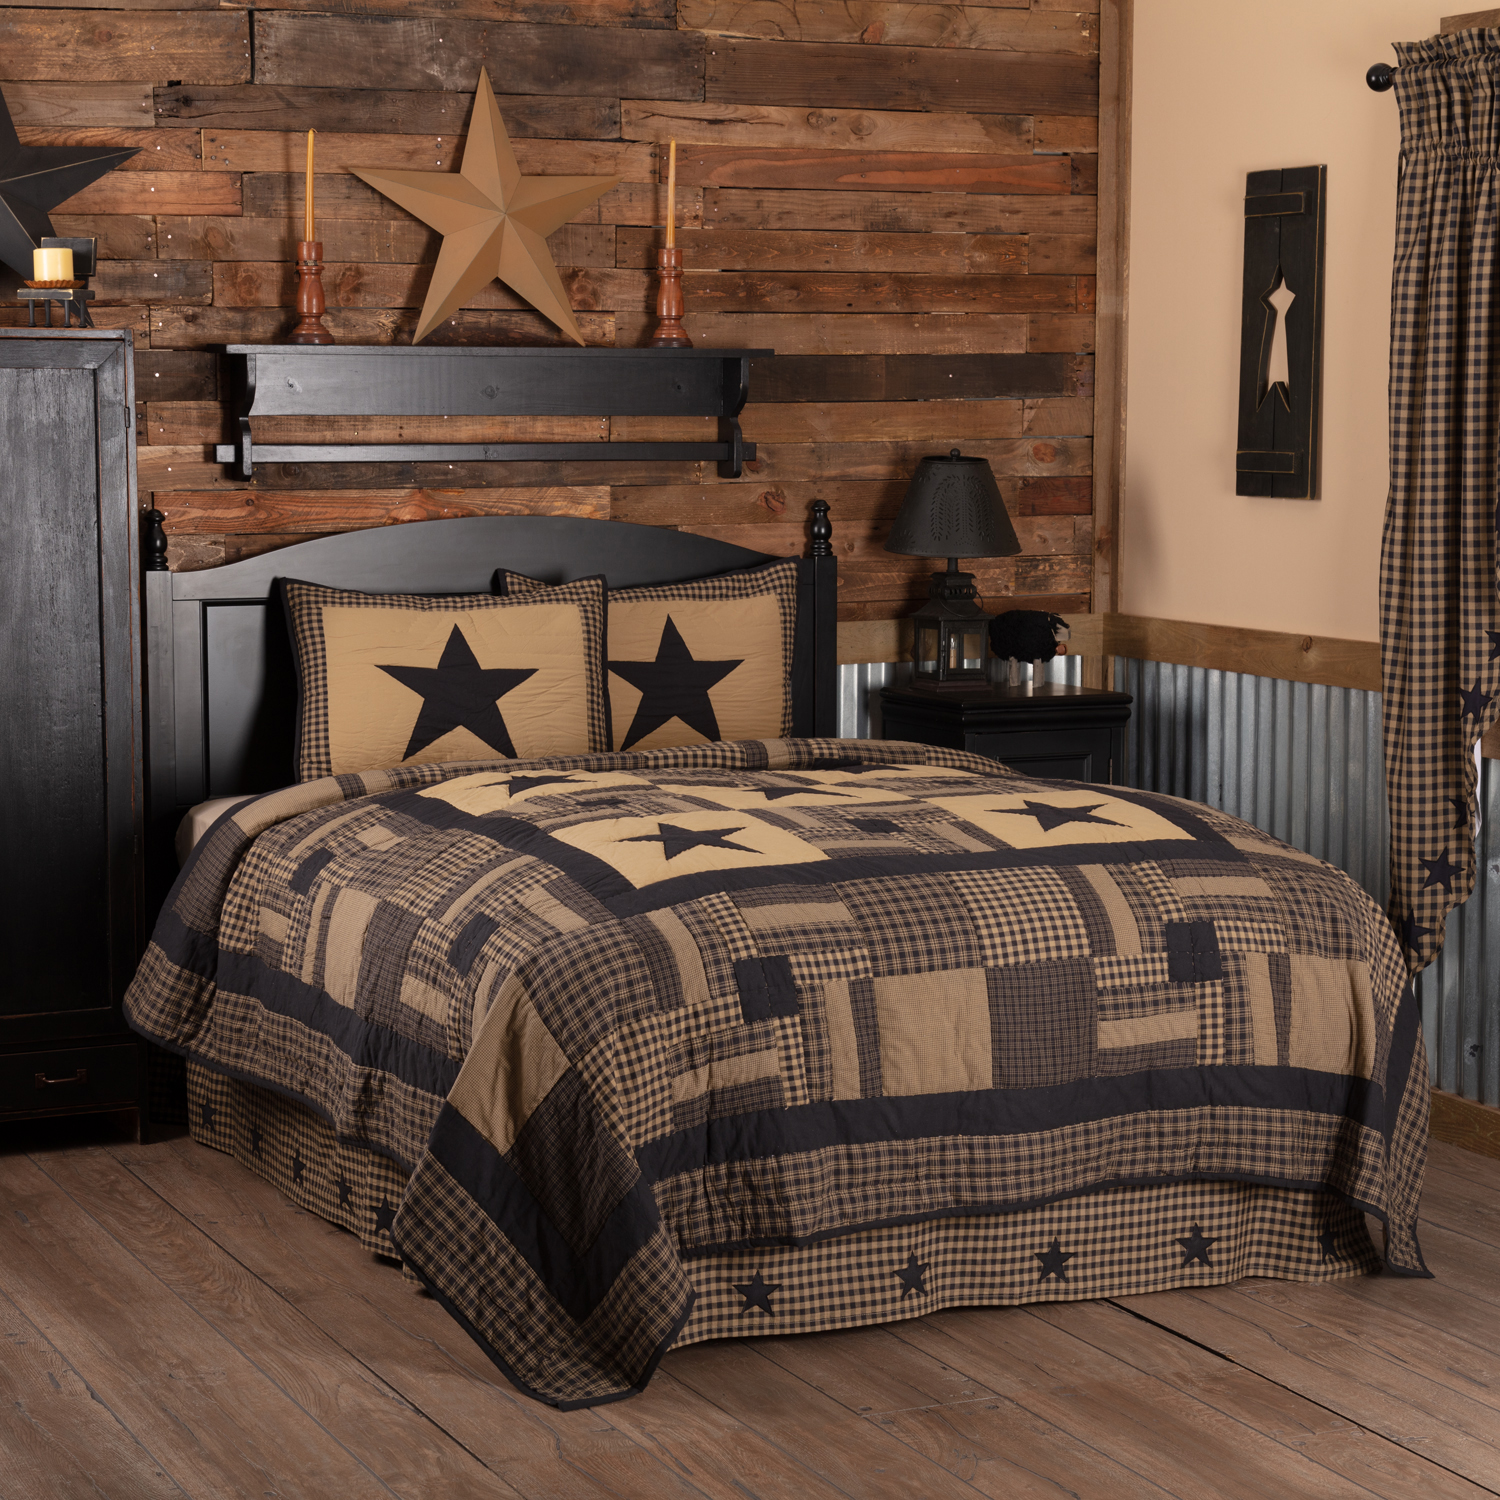 Black Check Star King Quilt Set; 1-Quilt 105Wx95L w/2 Shams 21x37